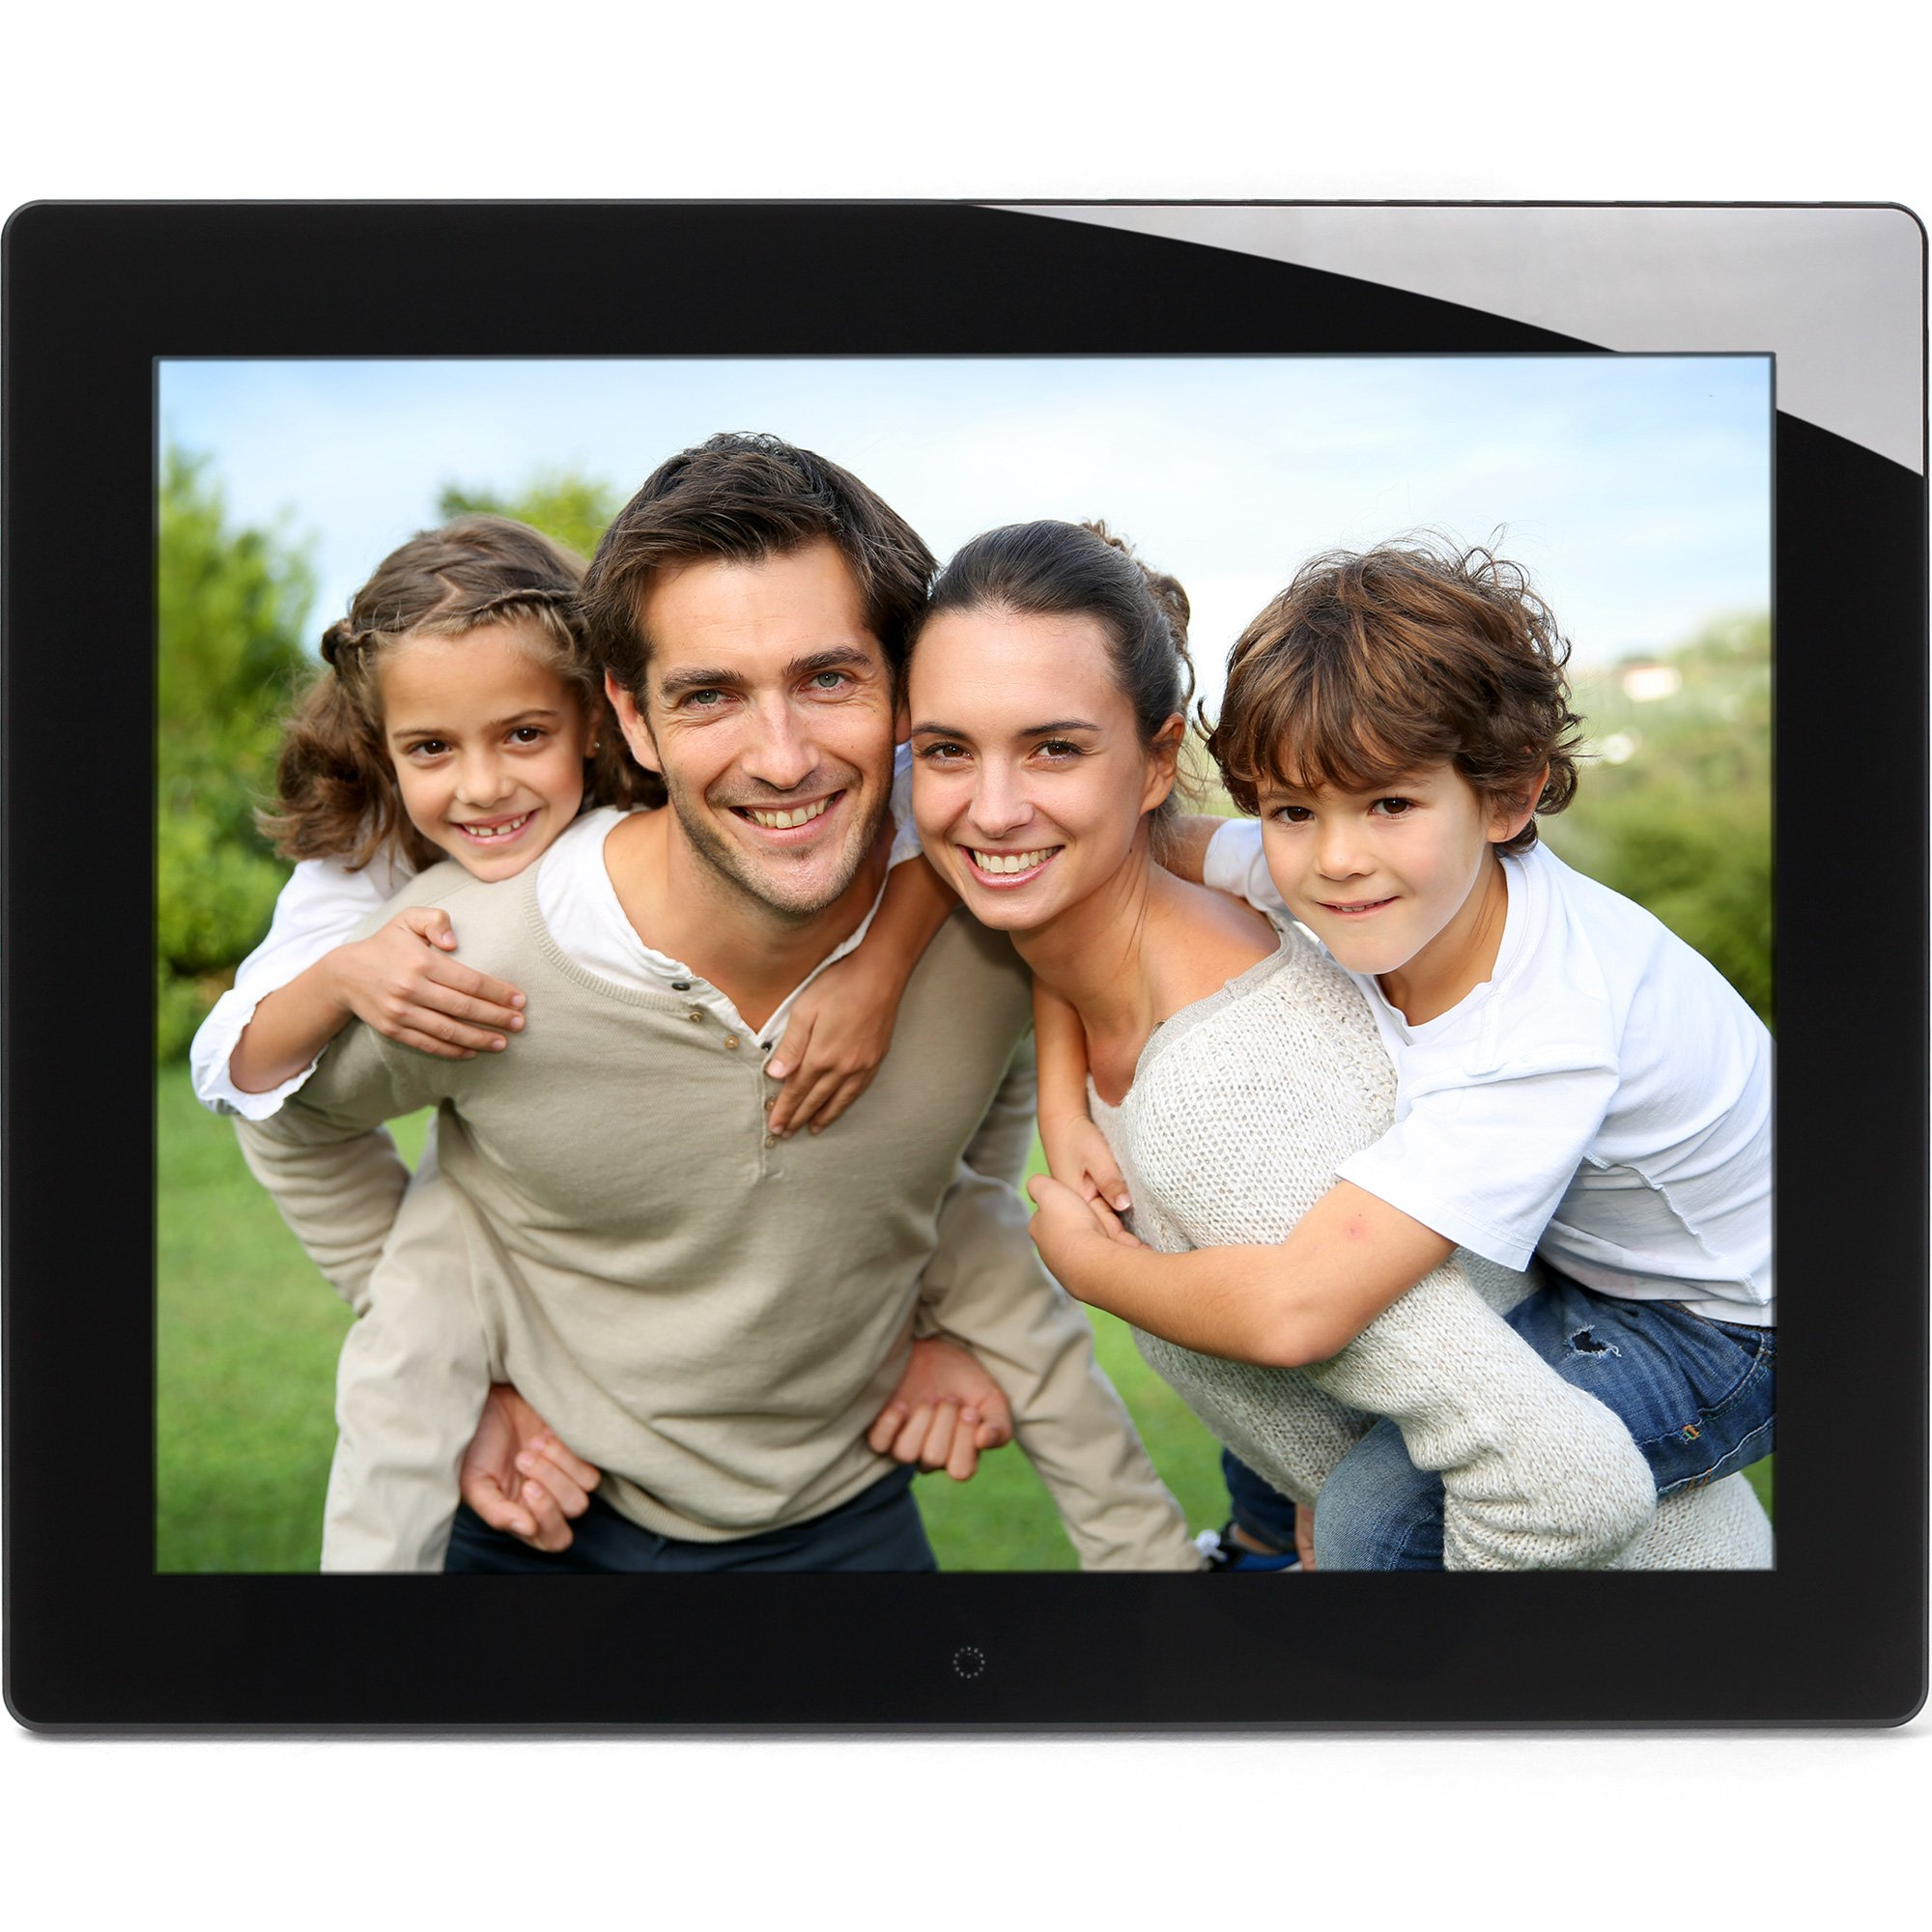 Micca Neo-Series 15-Inch Natural-View Digital Photo Frame with 8GB Storage Media (M153A) by Micca